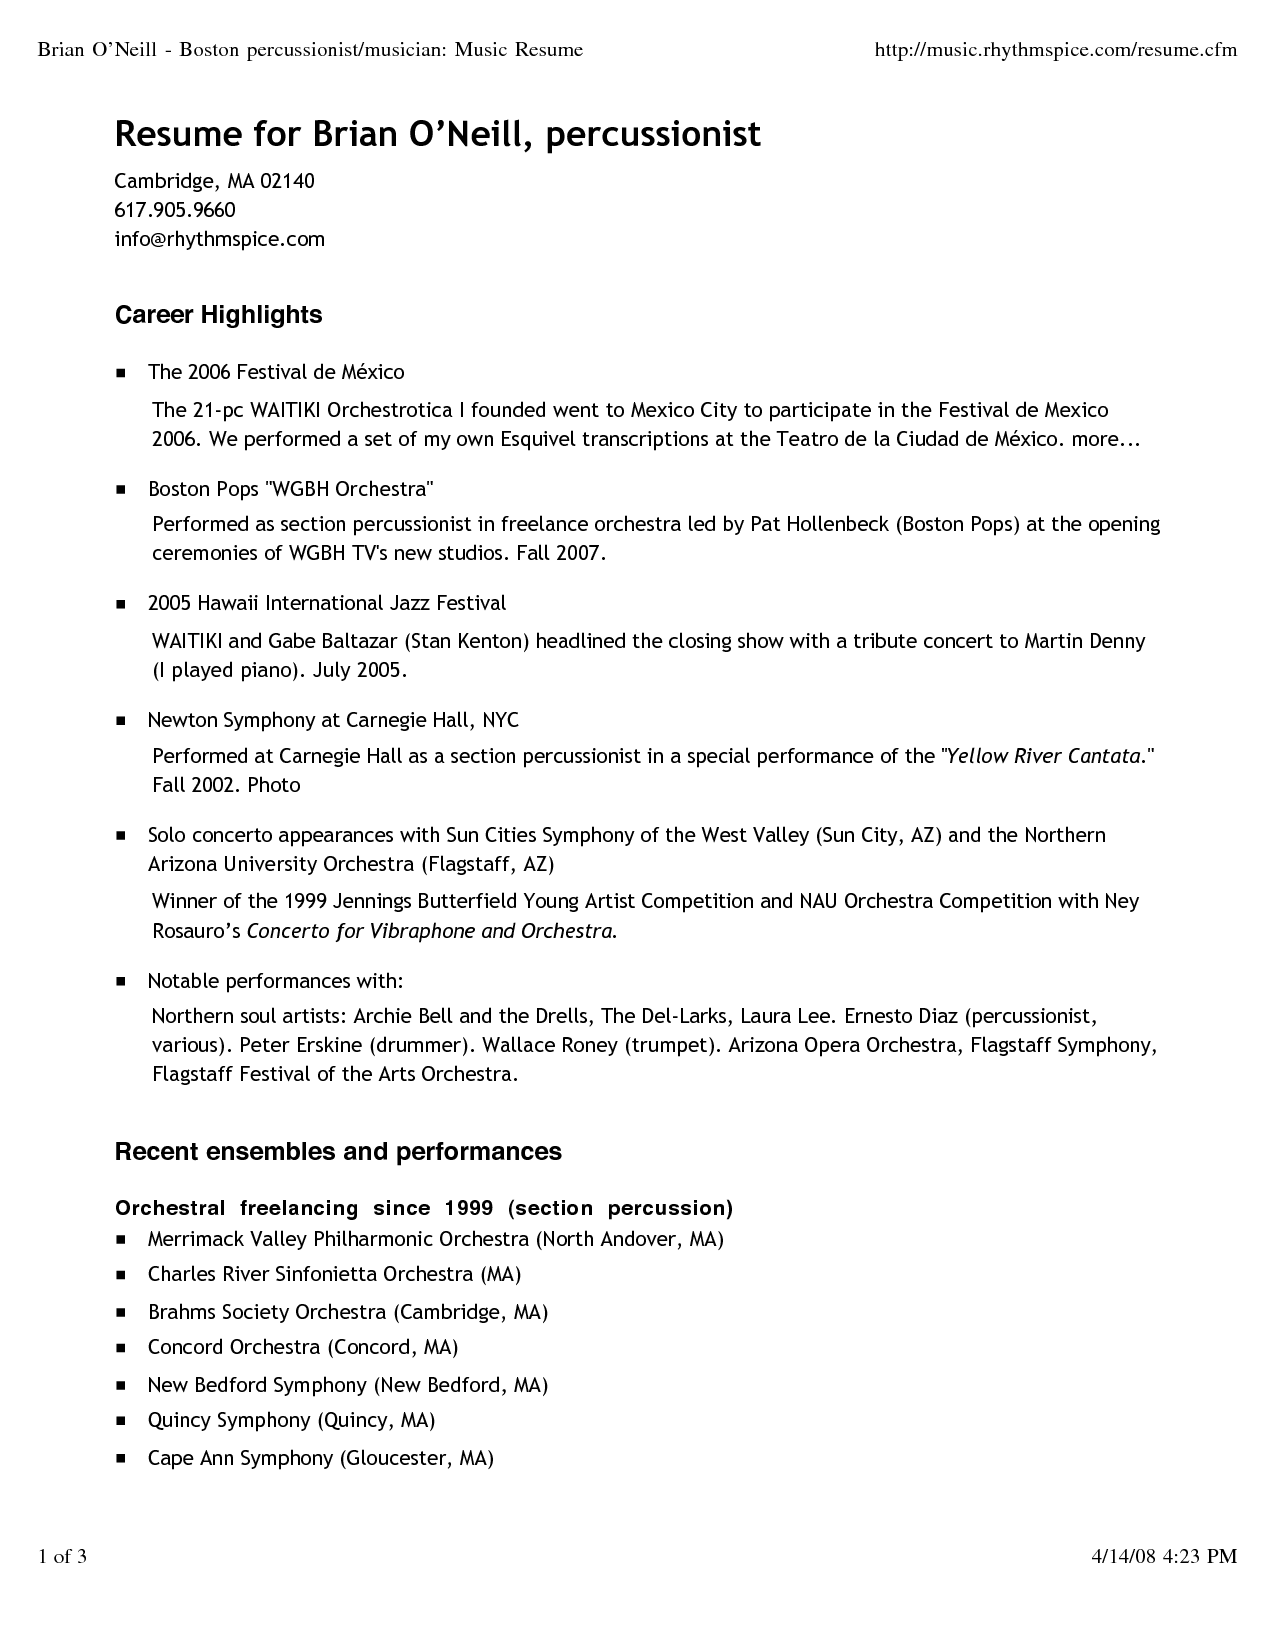 Musician Resume Template Brian Oneill Boston